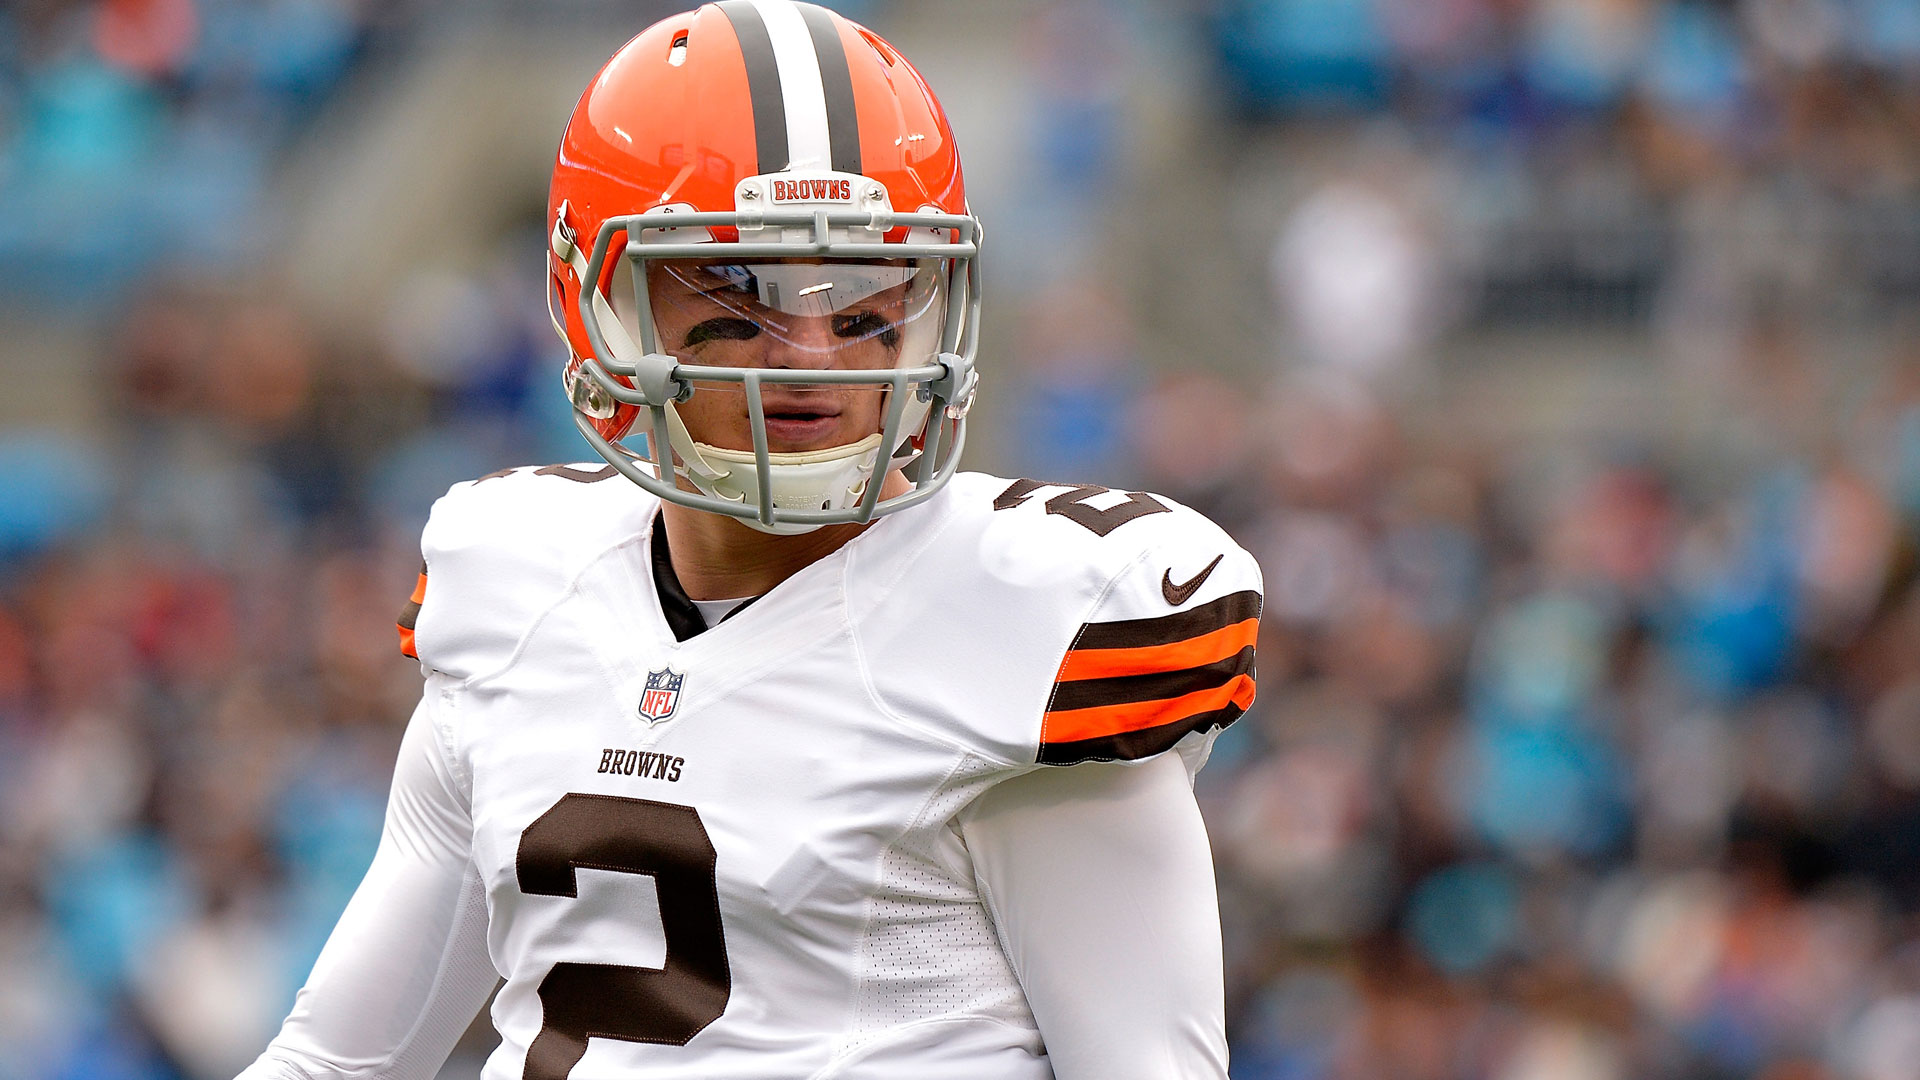 Mike Pettine says Johnny Manziel will start training camp as backup